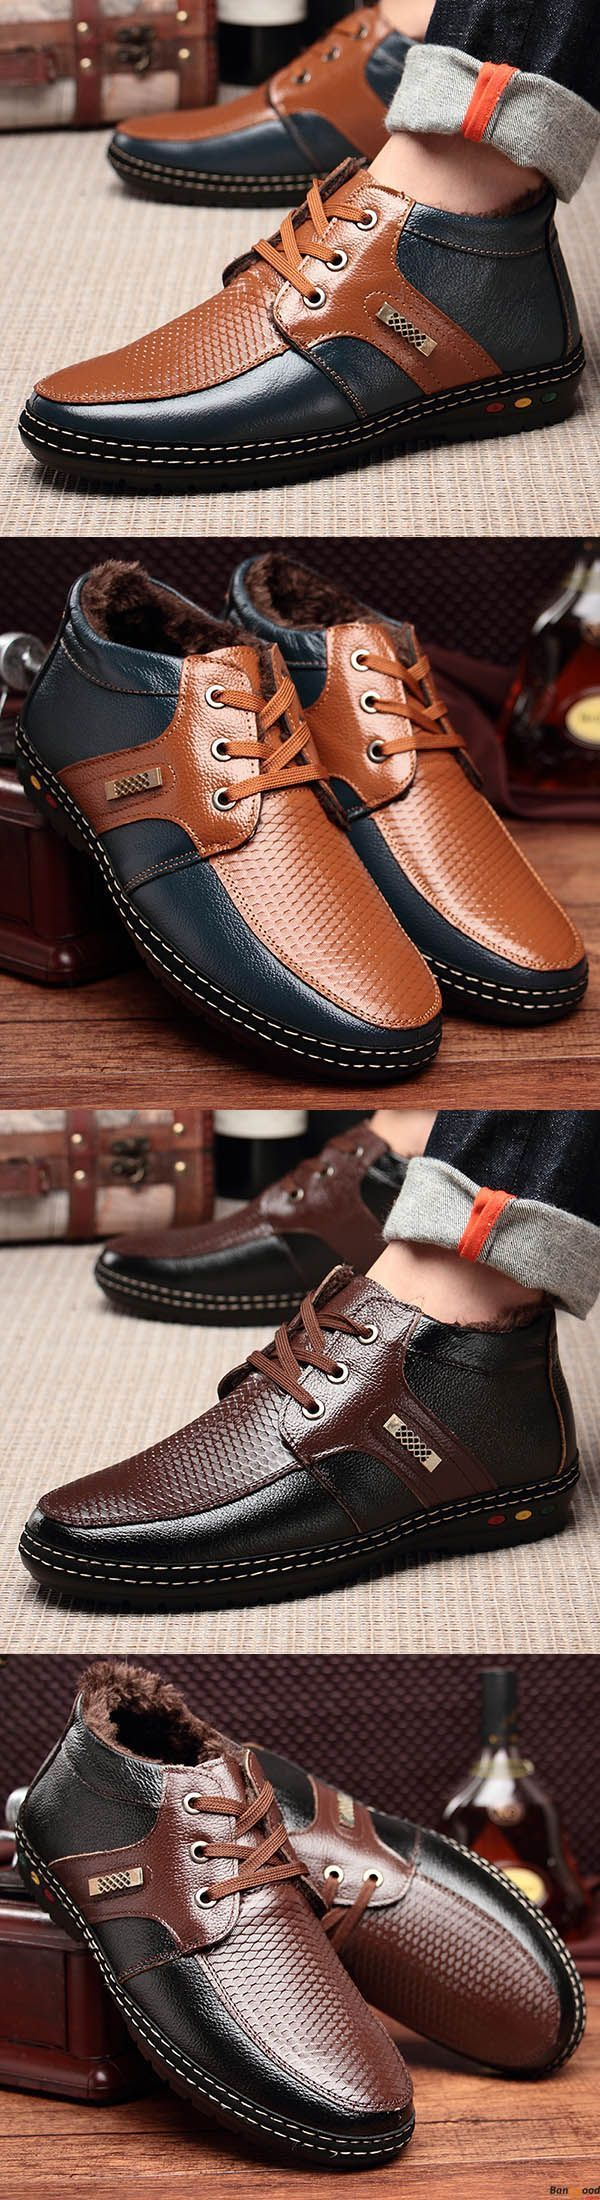 US$42.99+ Free Shipping. Men Casual Genuine Leather Comfy Soft Fur Lining High Top Oxfords Shoes. Mens comfy style. Warm and chic. Shop at banggood now. #Modernman'sboots